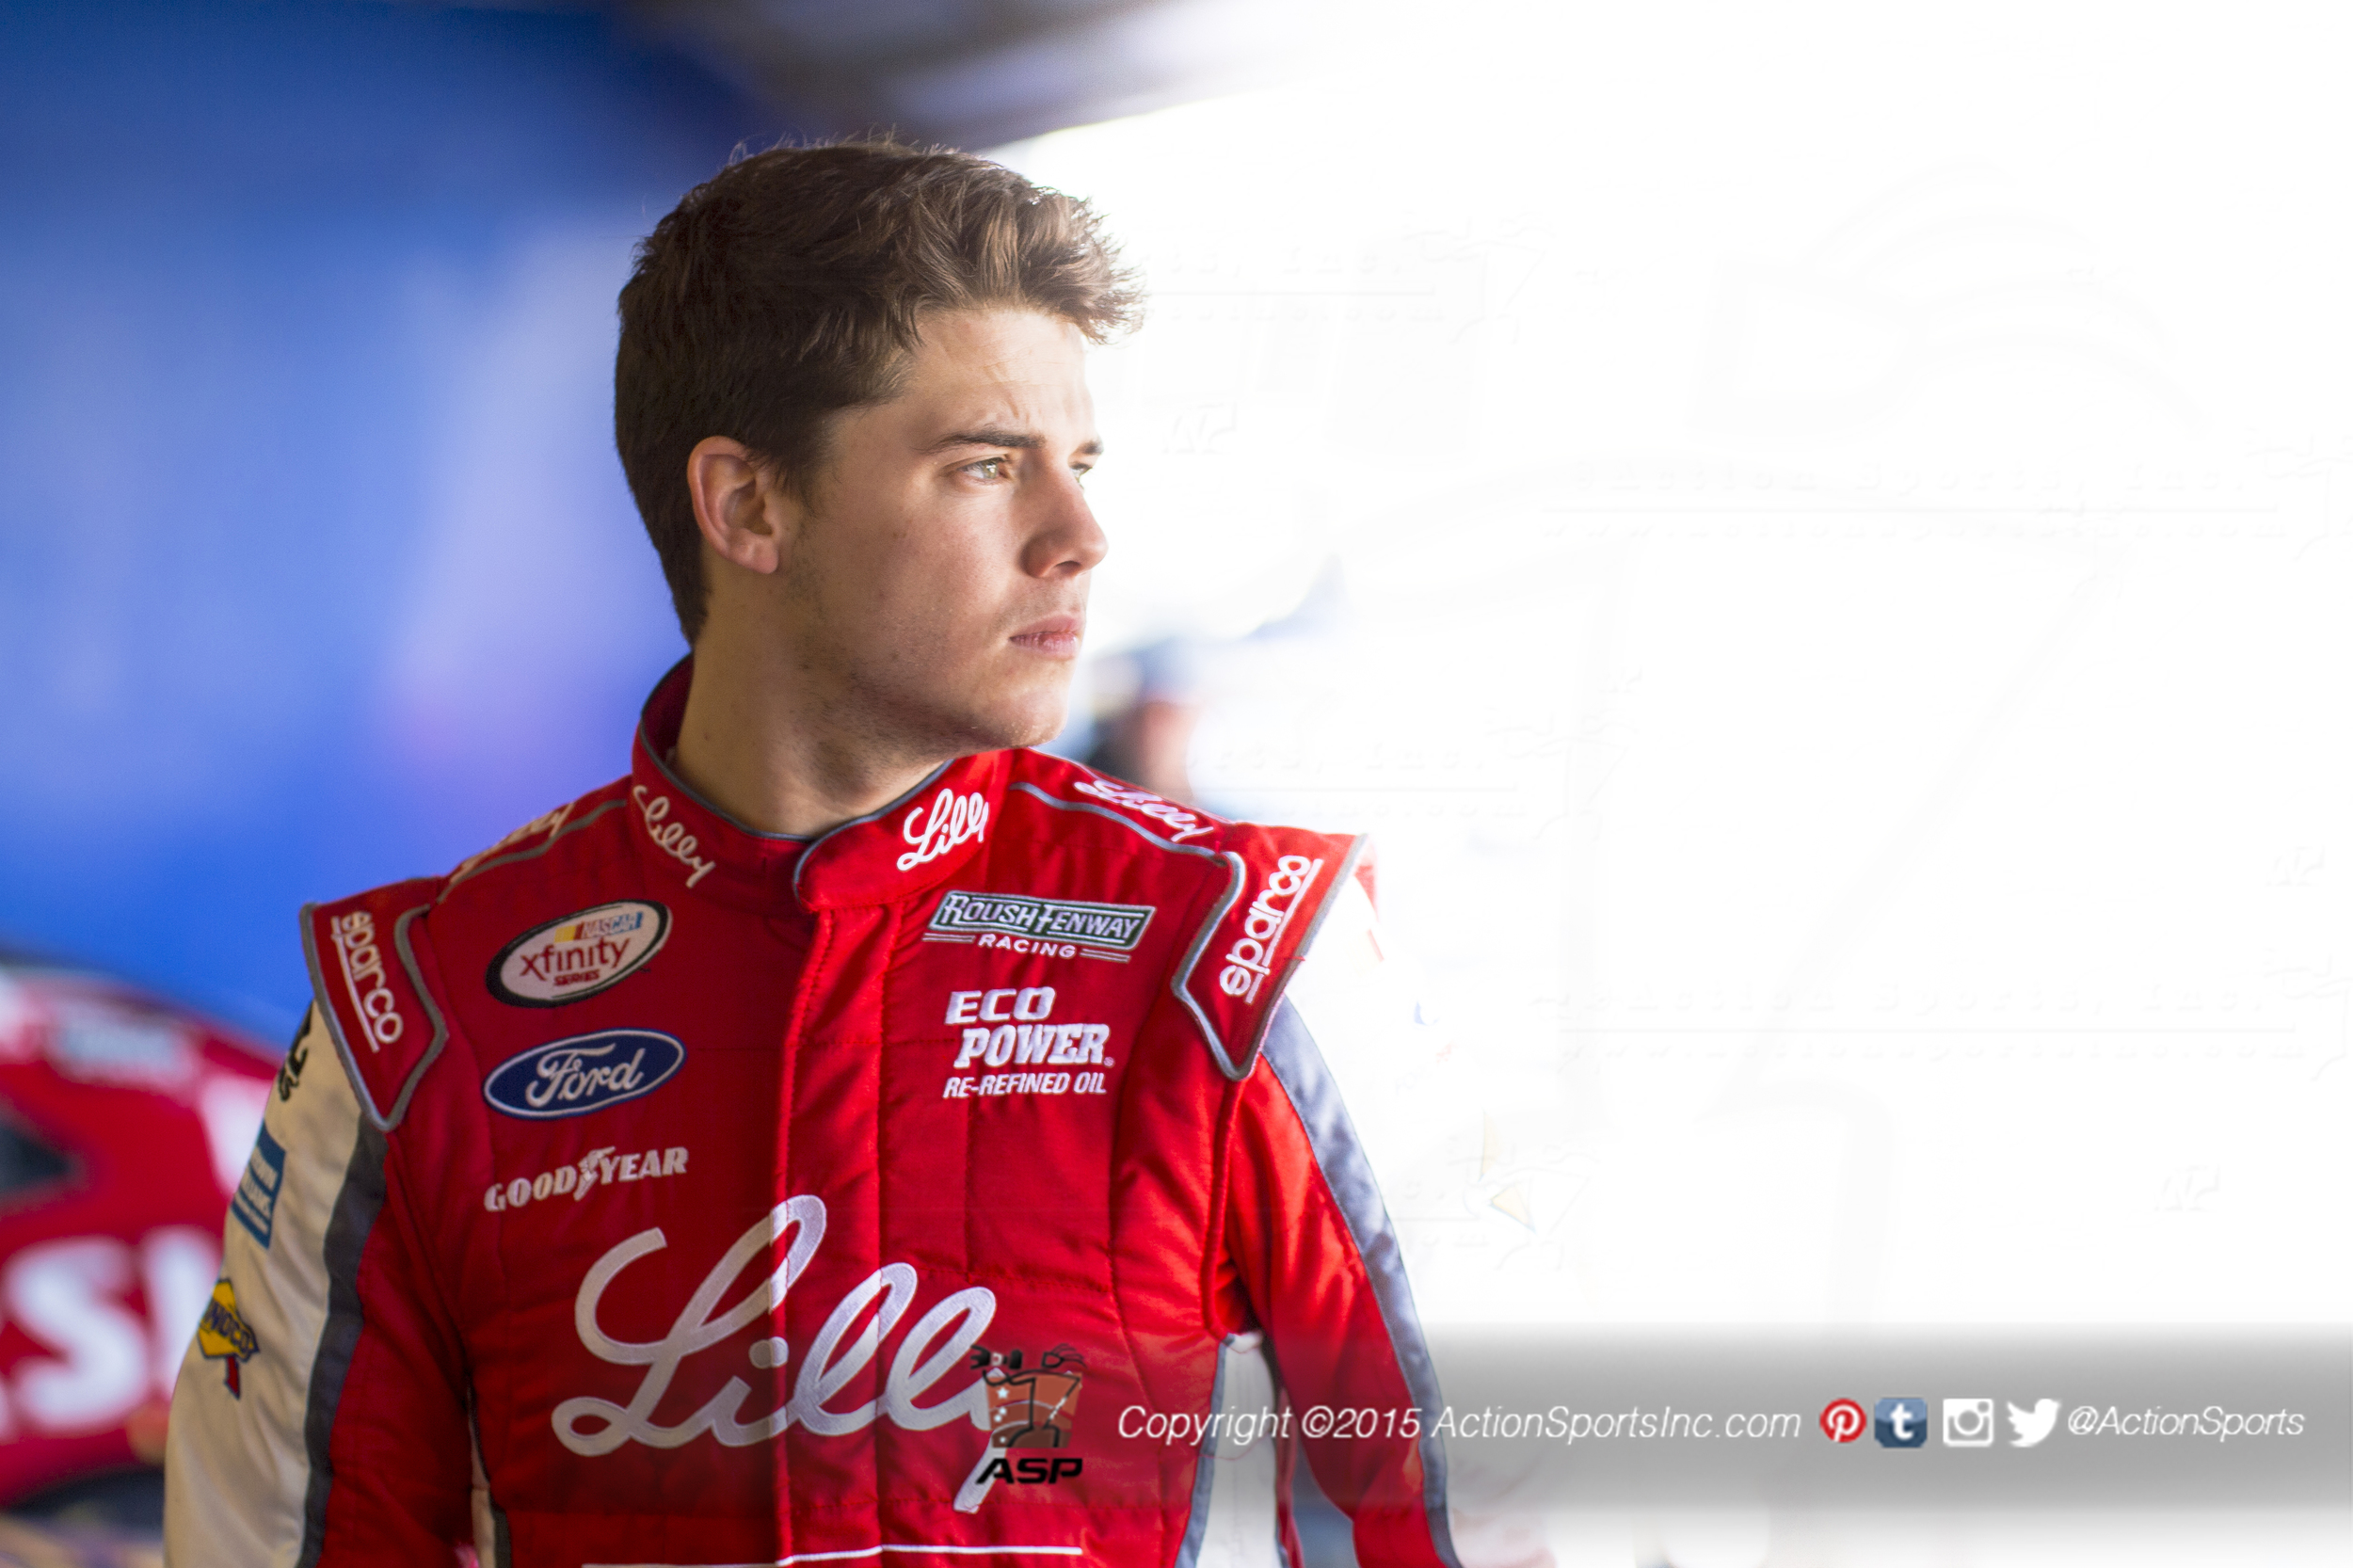 Ryan Reed driver of the #16 XfinityFord ADA Drive to Stop Diabetes presented by Lilly Diabetes prepares to test his race car